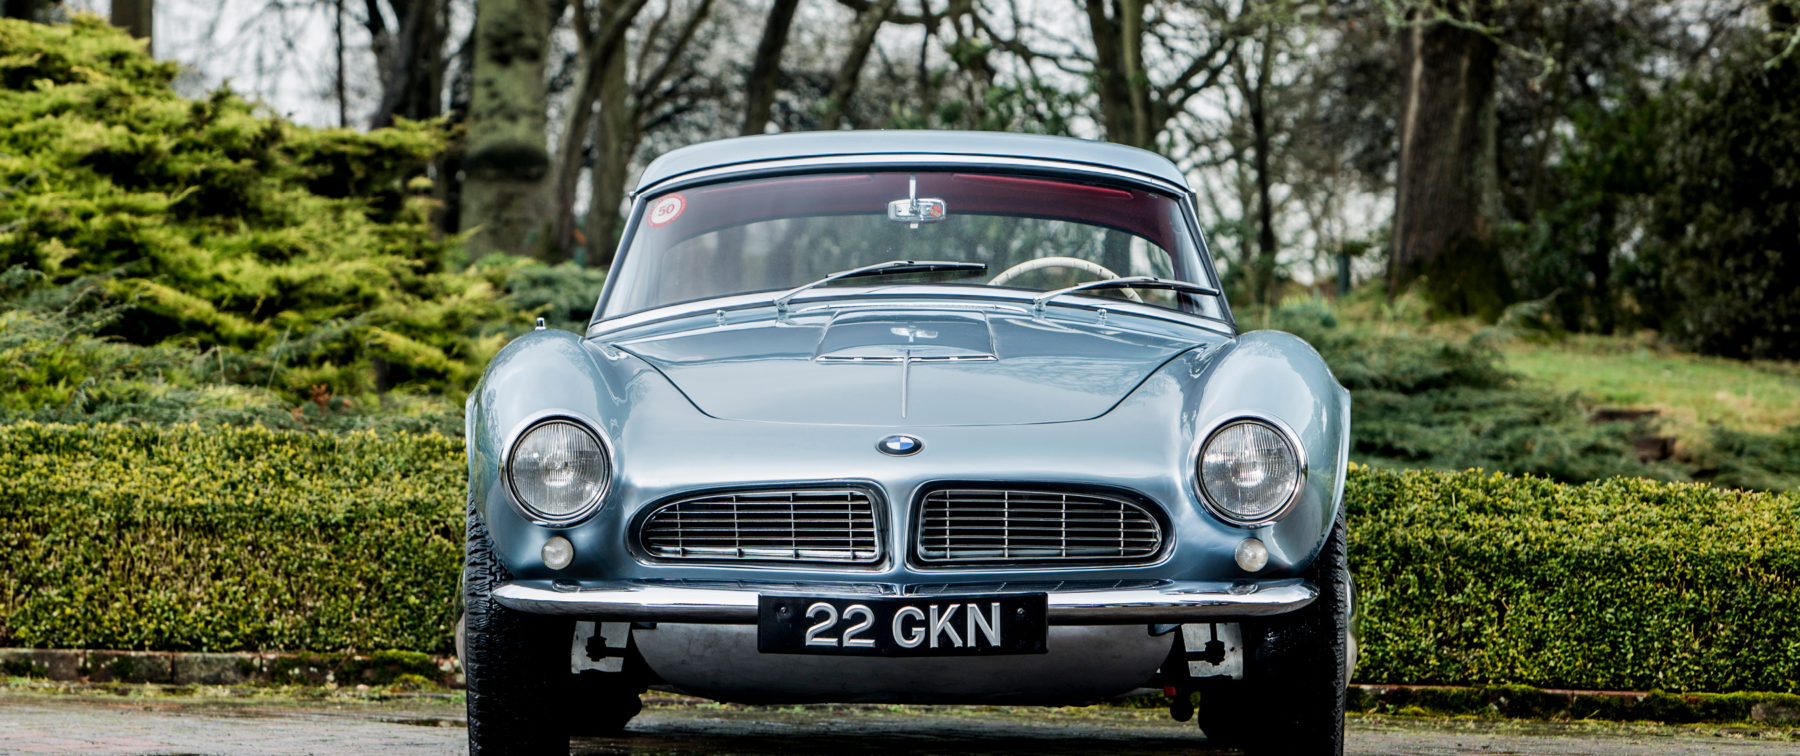 You can buy John Surtees  1957 BMW 507 Roadster   Gentleman s Journal Home Gear Cars Why John Surtees  1957 BMW 507 Roadster is the perfect  addition to any garage